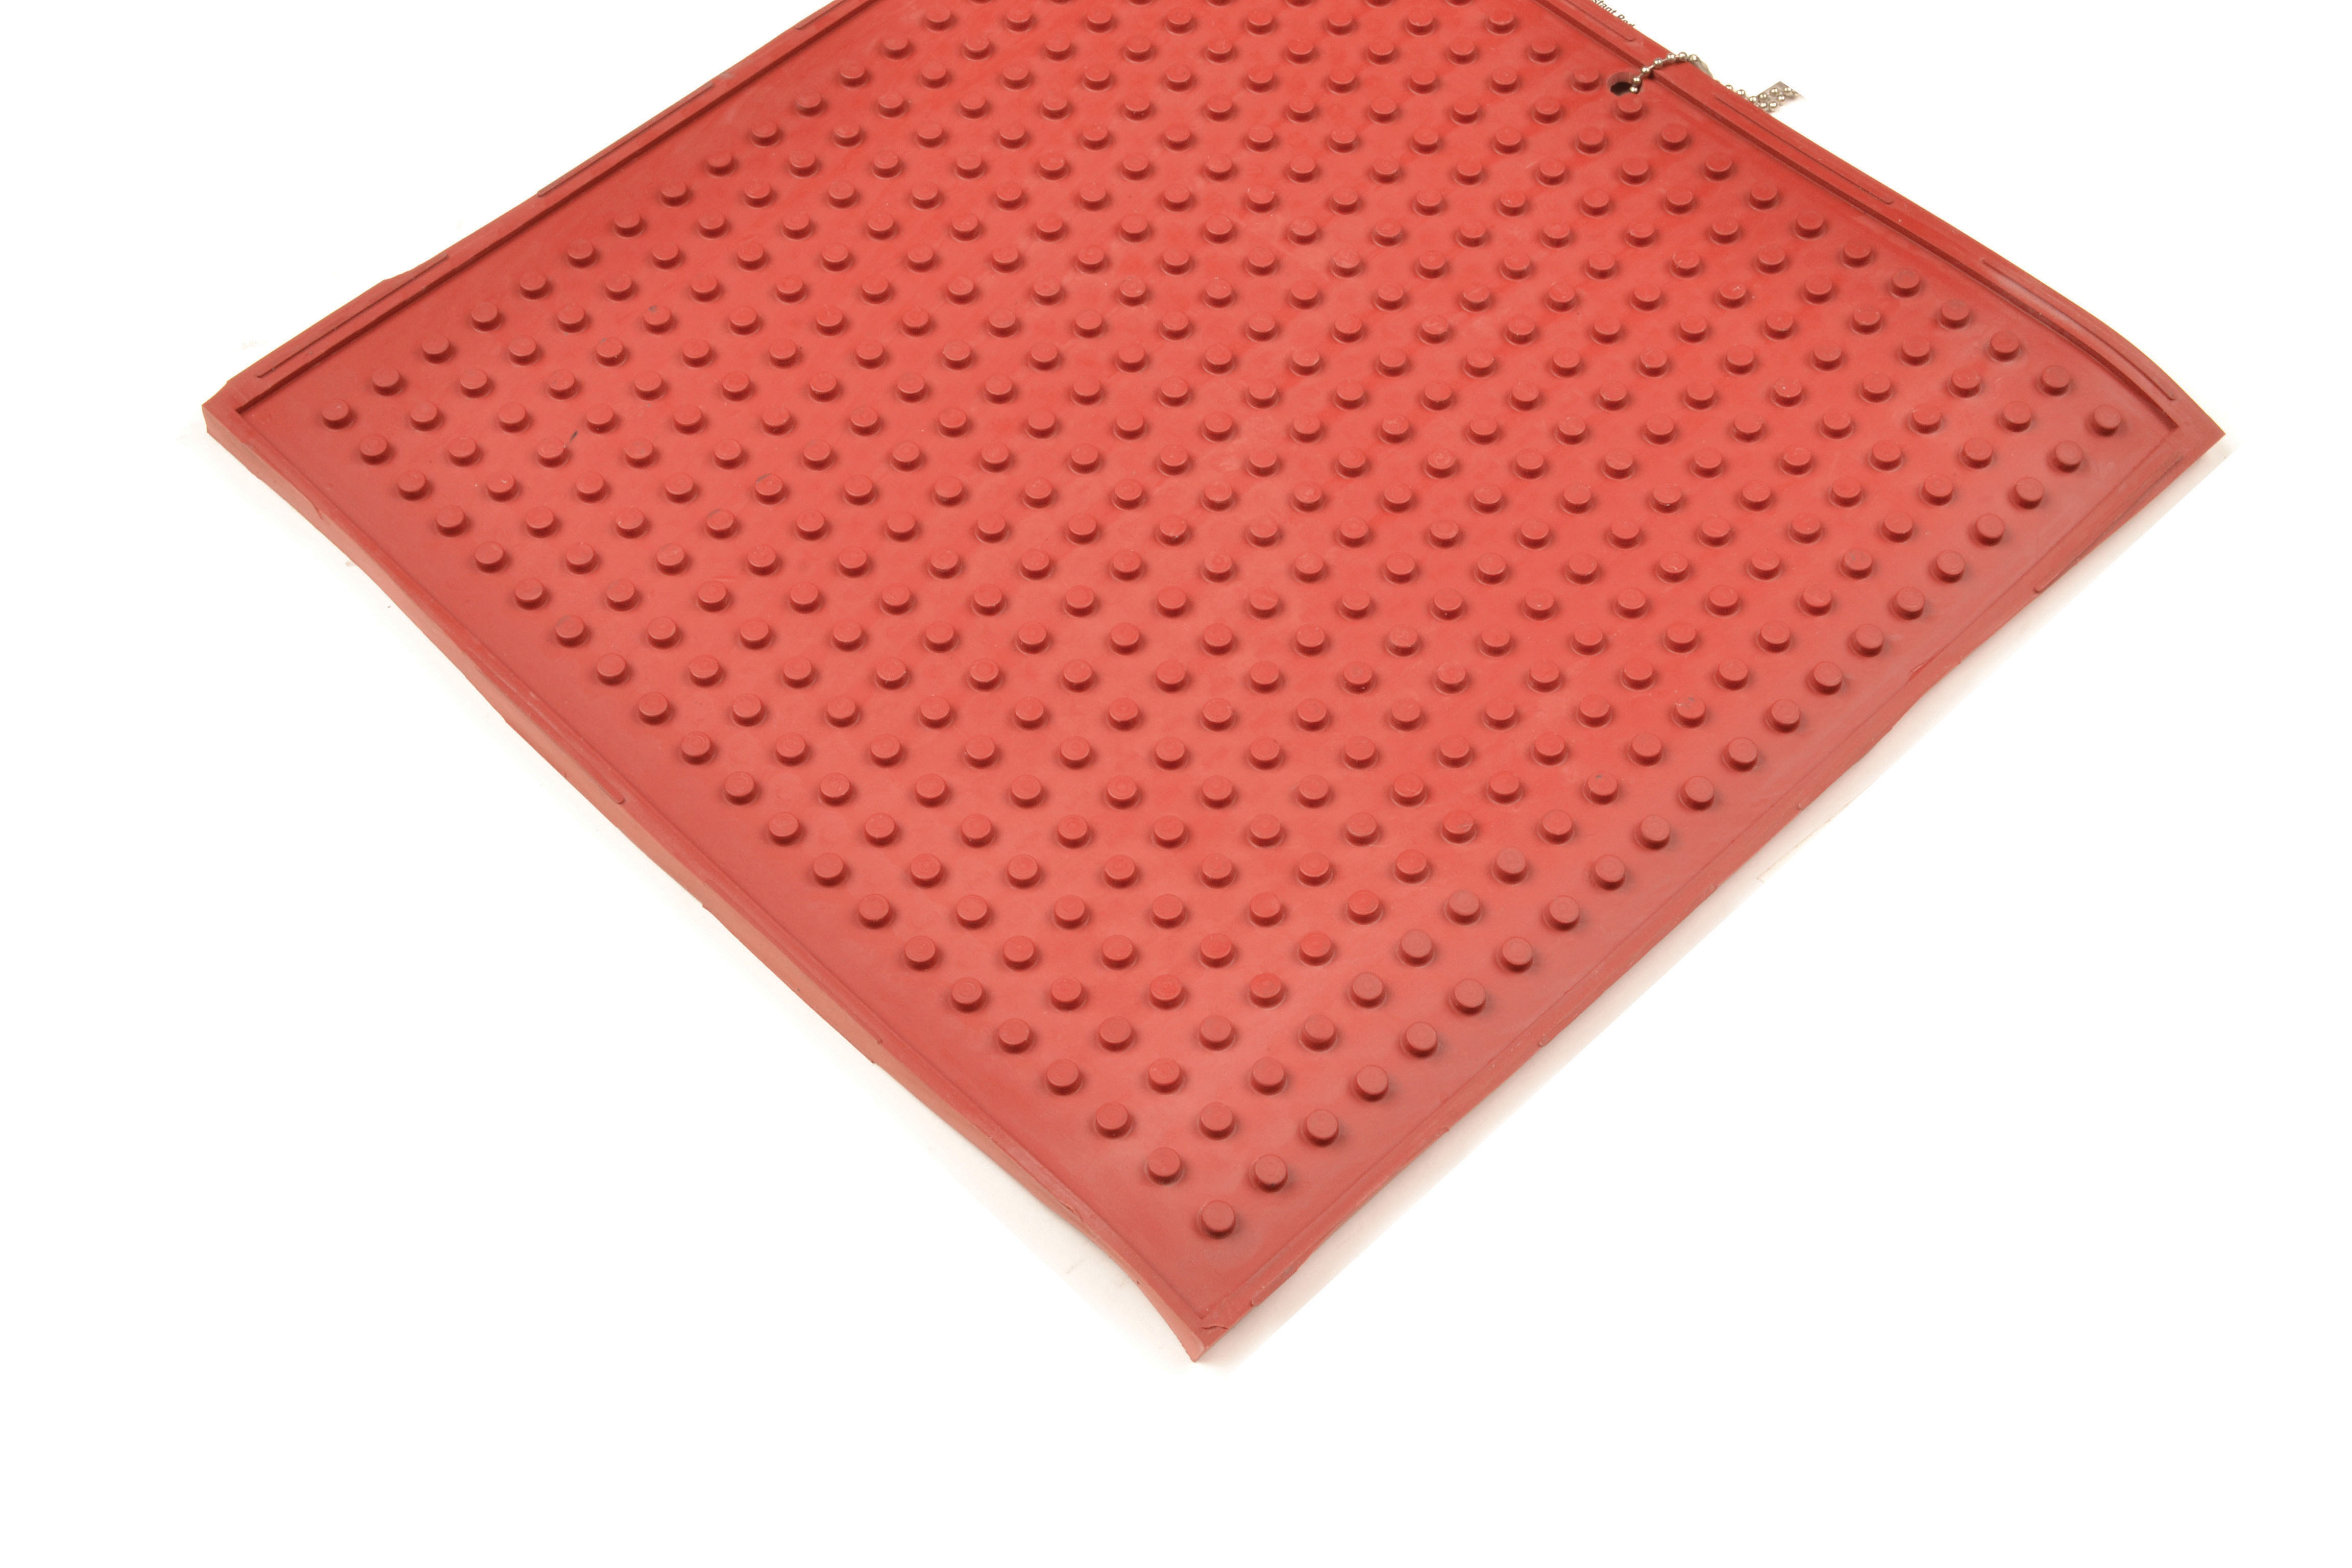 Traction Mat Multi-Purpose Anti-Fatigue Floor Mat - 3/8""